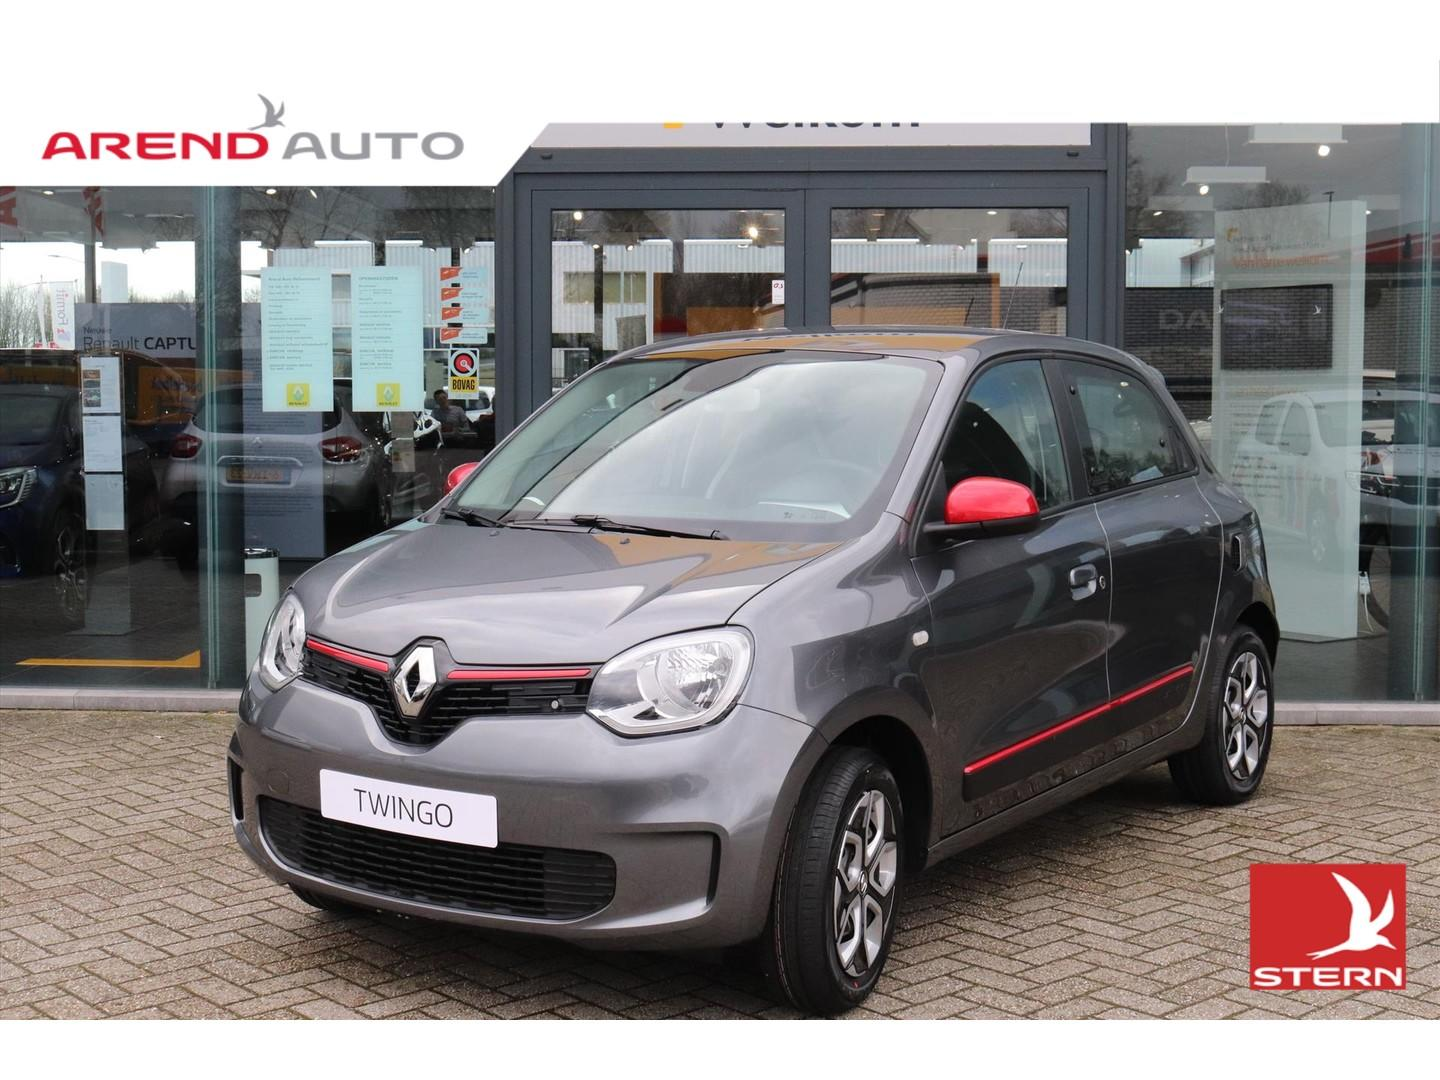 Renault Twingo 1.0 collection